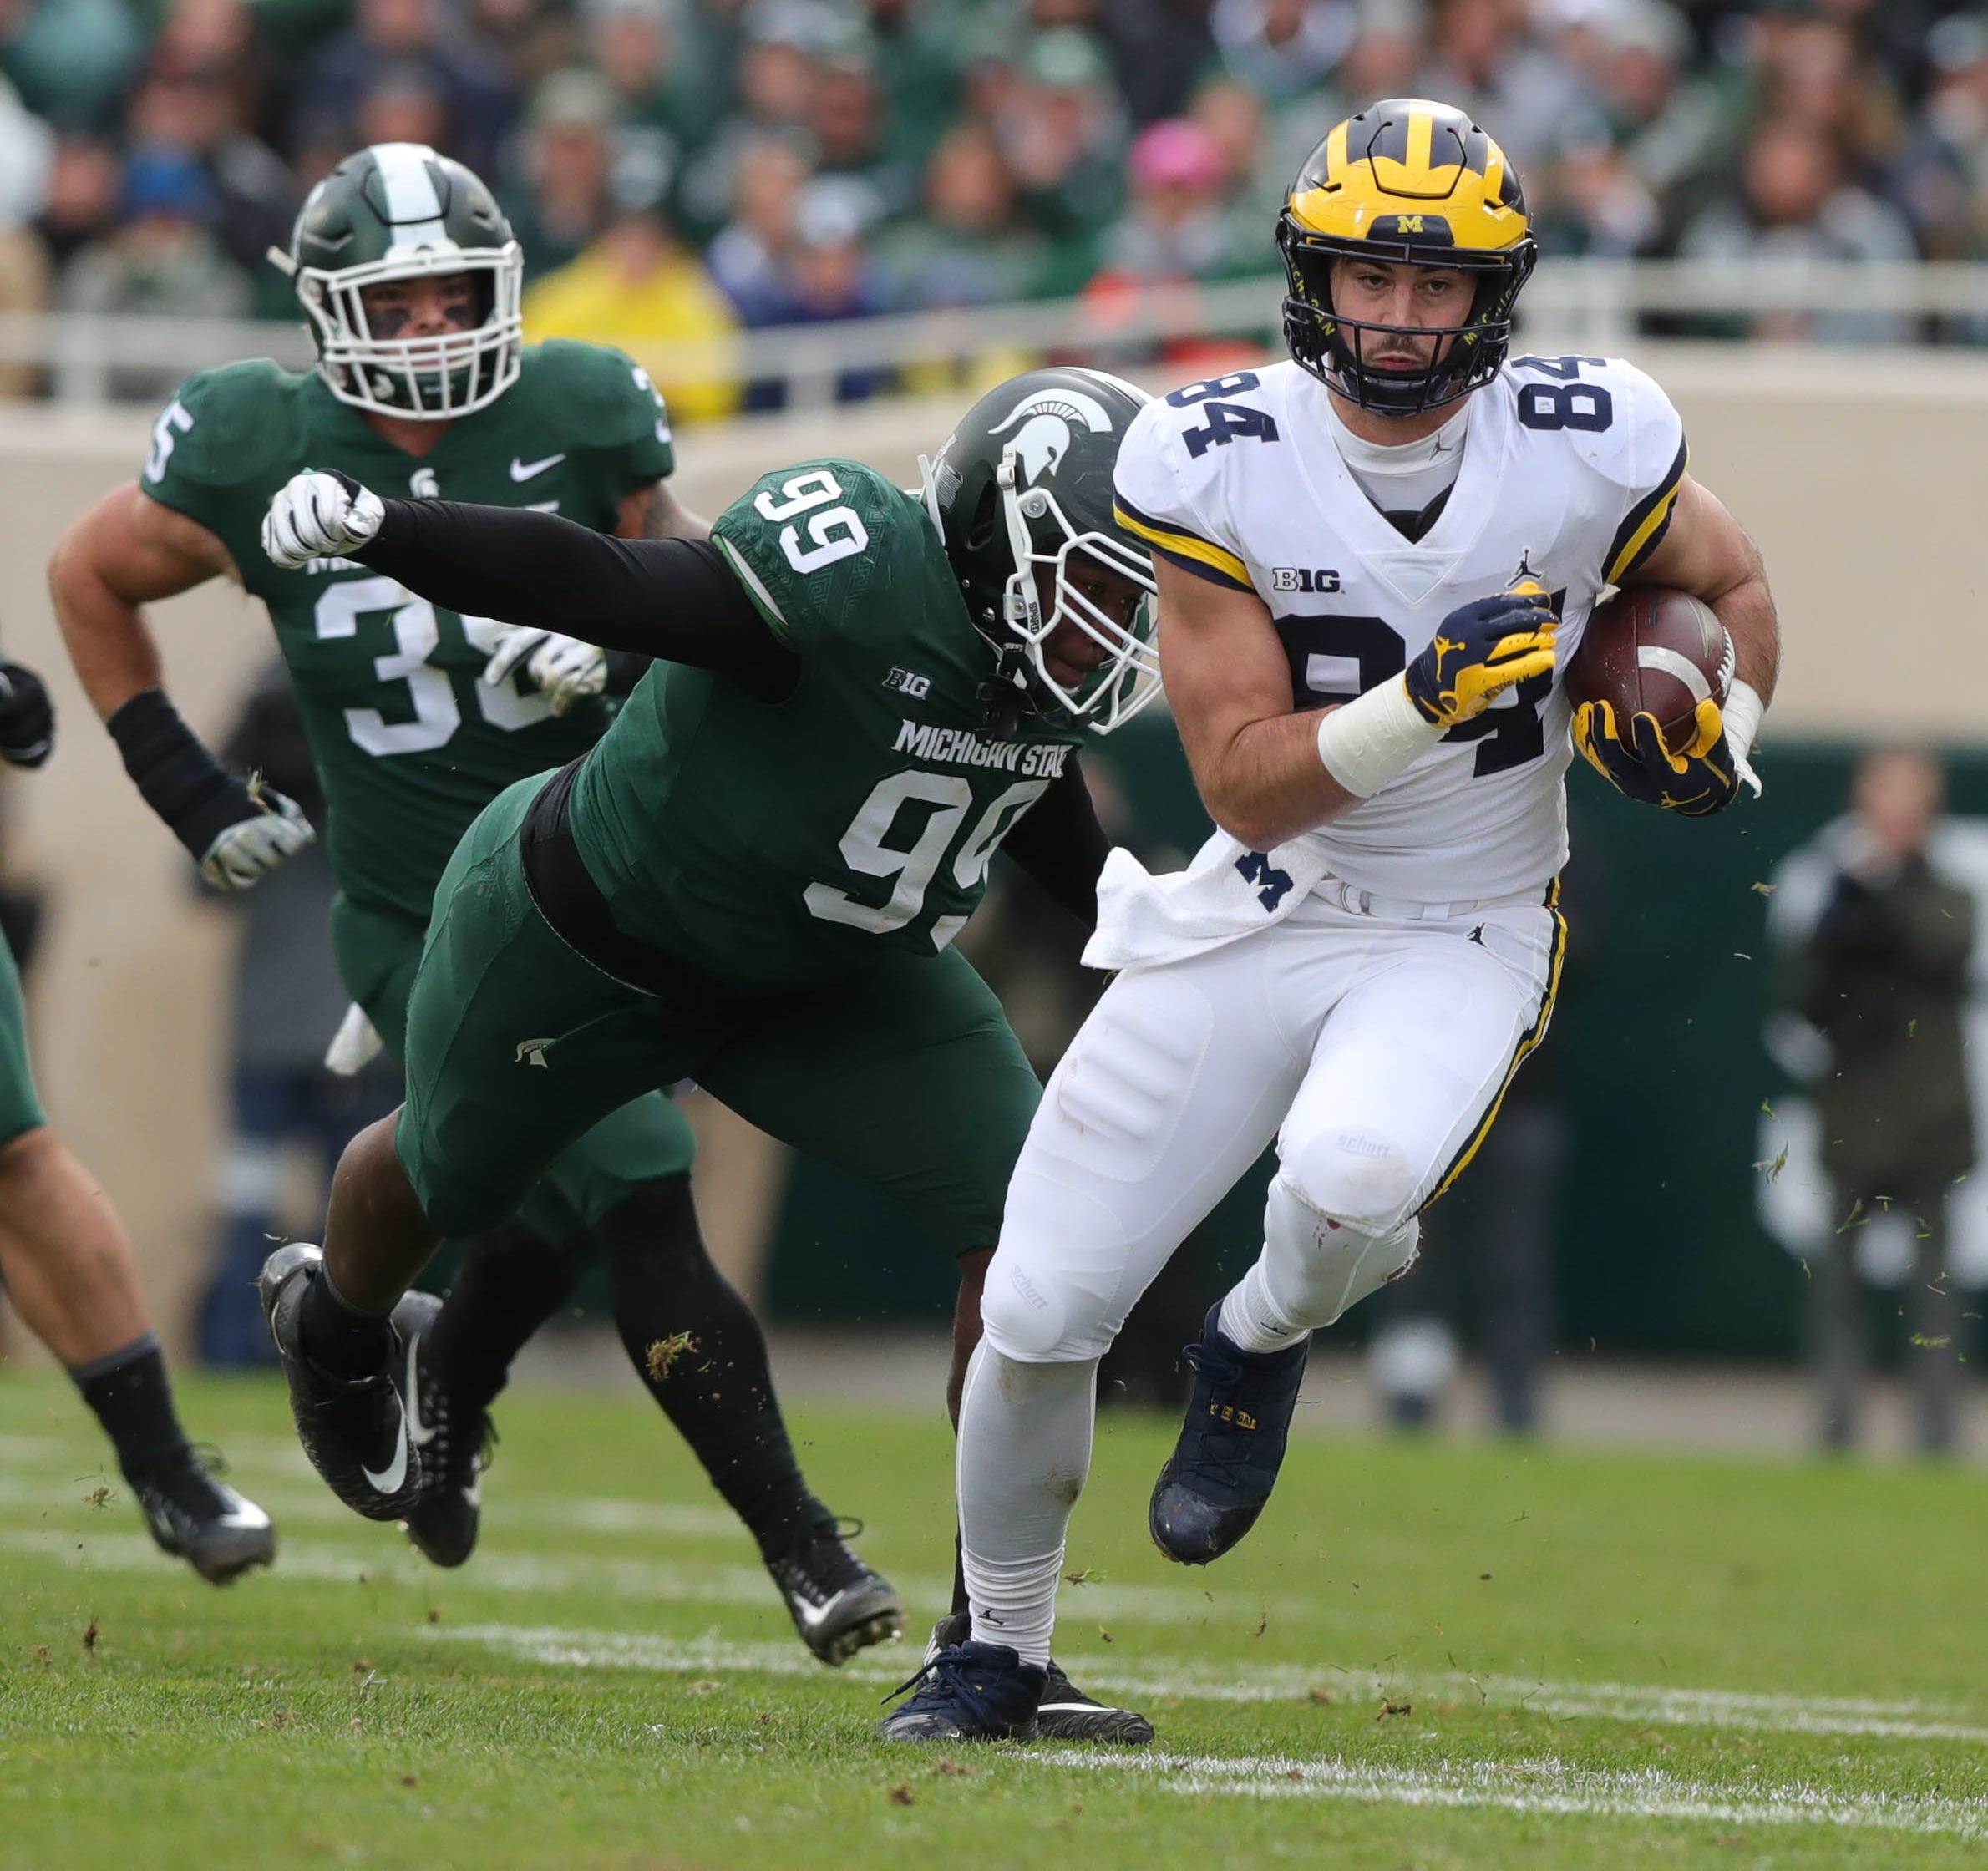 Michigan tight end Sean McKeon runs by Michigan State defensive lineman Raequan Williams during the first half in Spartan Stadium on Saturday, Oct. 20, 2018.